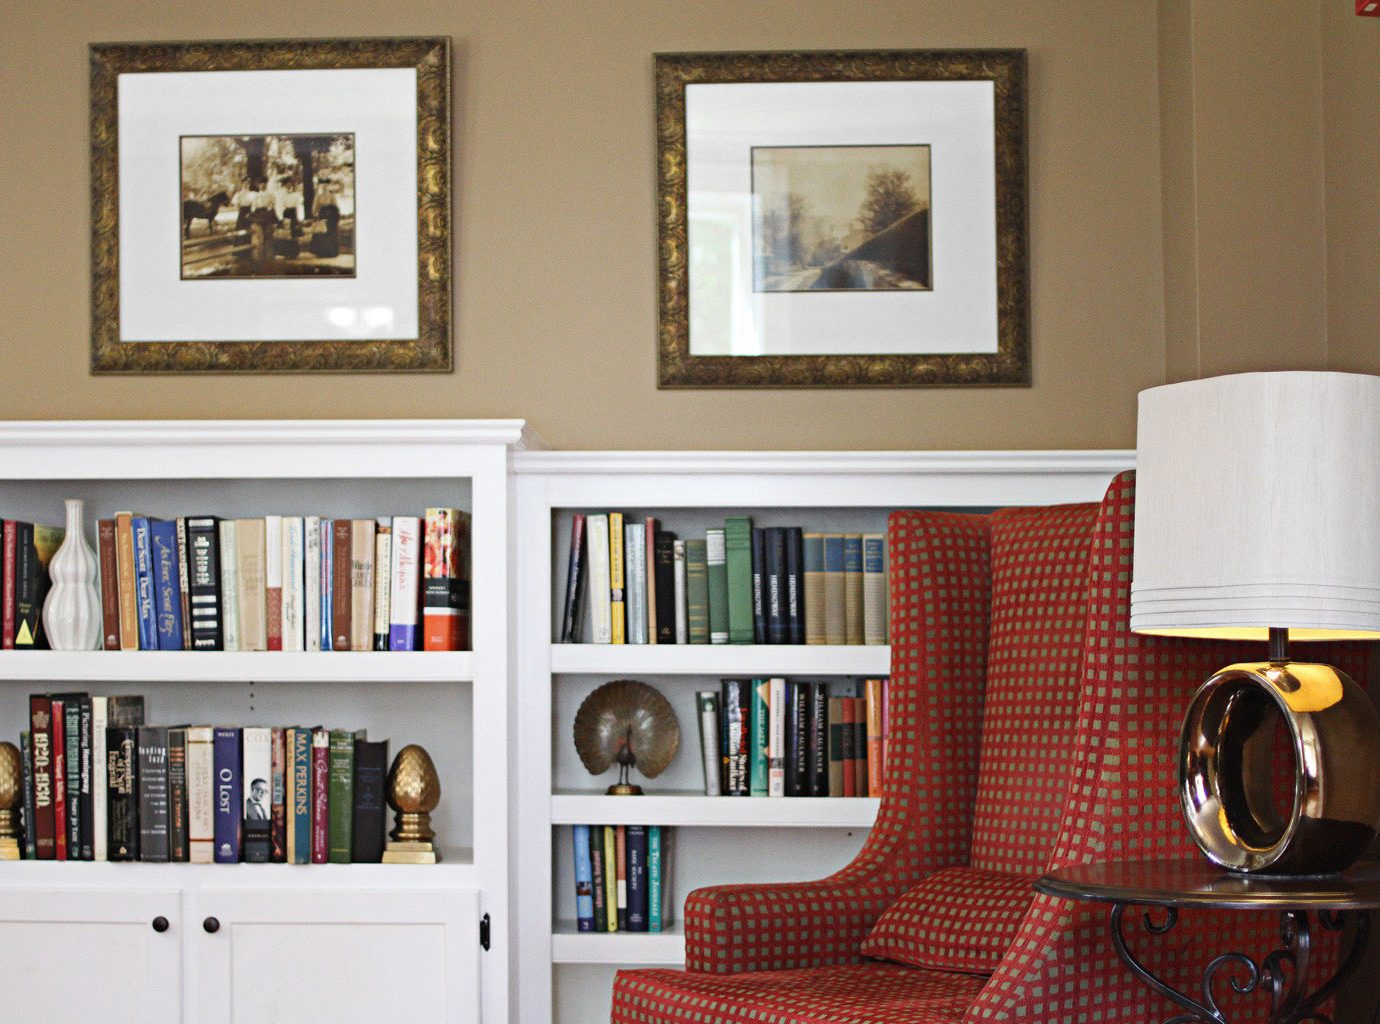 Classic Country Inn living room shelf home shelving bookcase cabinetry